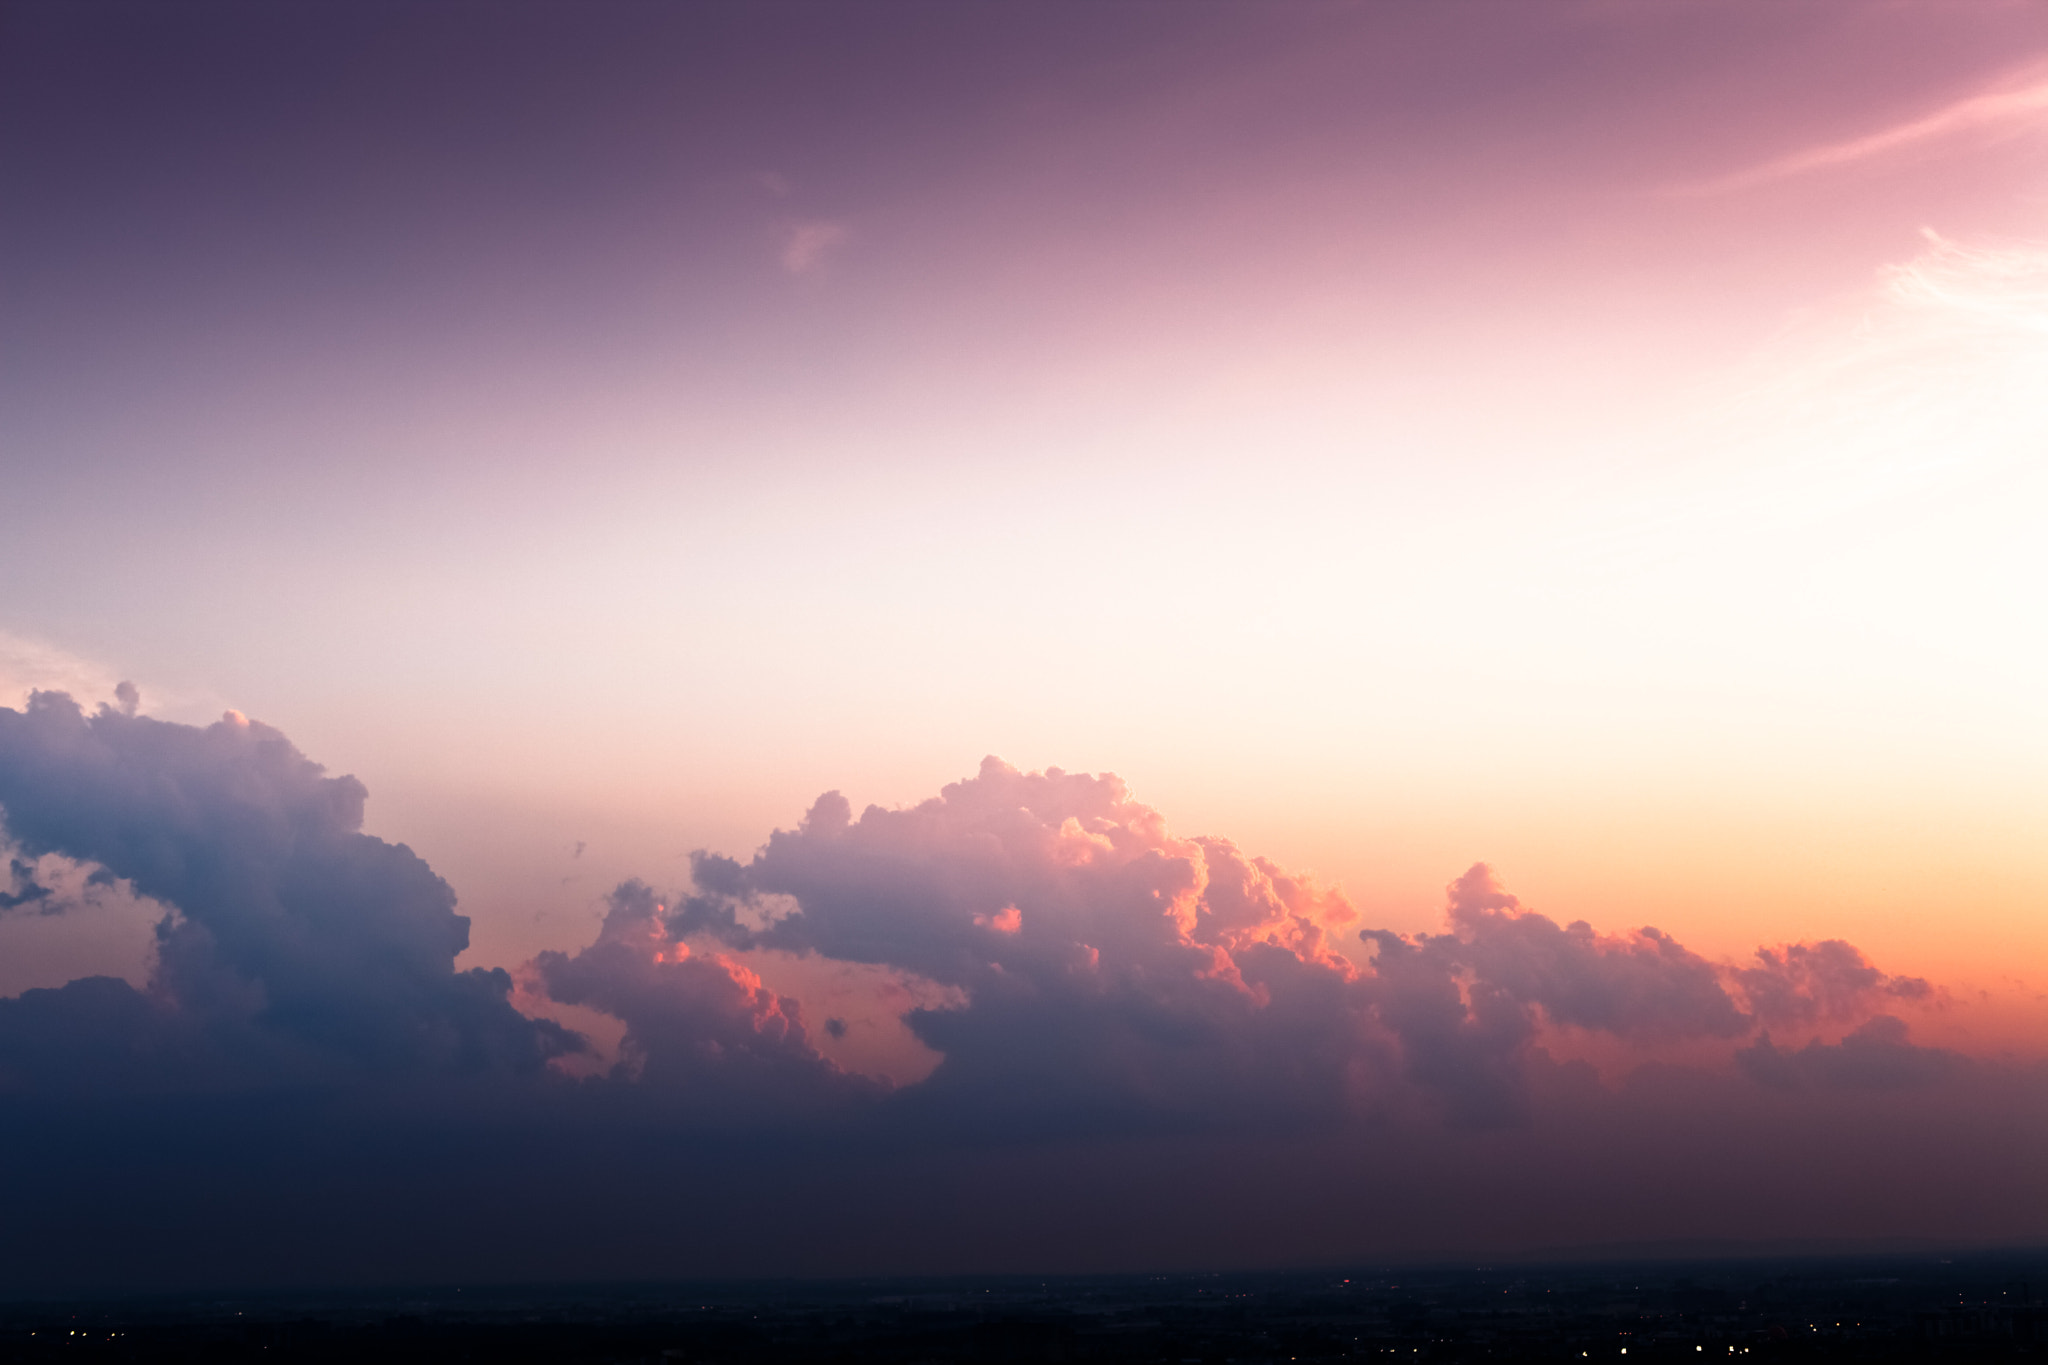 Photograph Cloud 9 by Fay Sckoropad on 500px